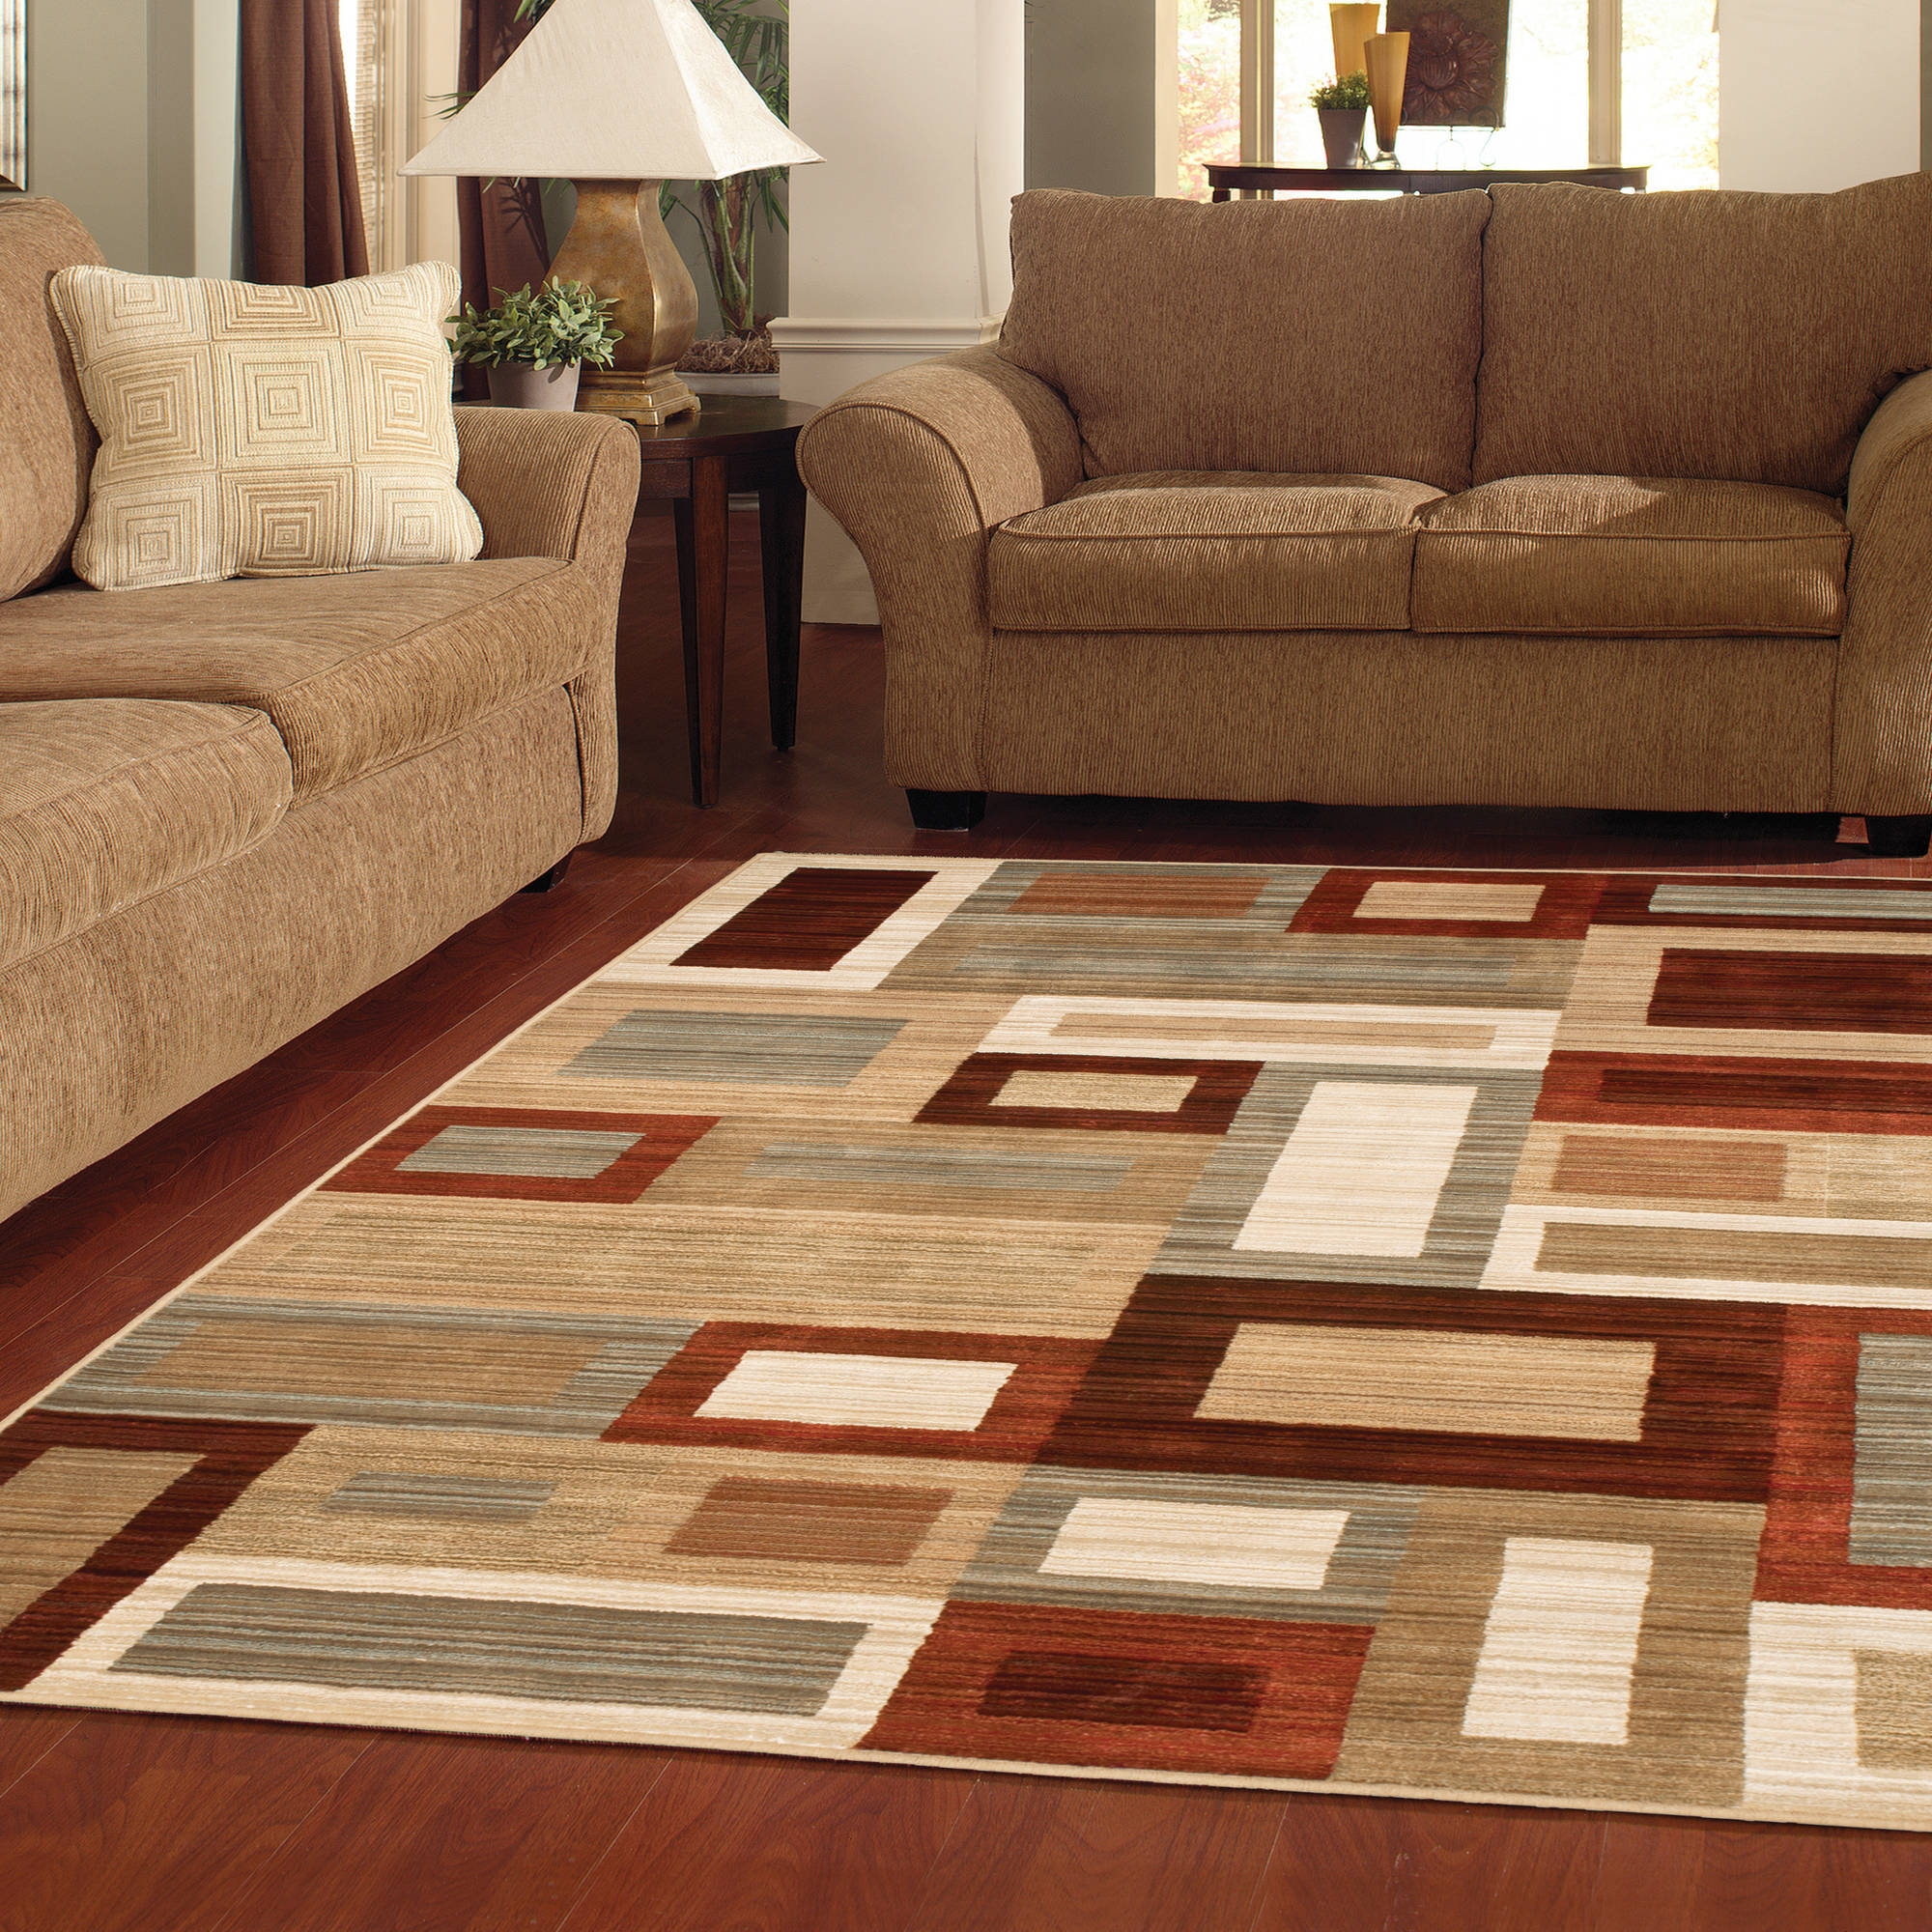 Rug Best Target Rugs Hearth Rugs And Round Area Rugs Walmart Within Hearth Rugs (Image 15 of 15)